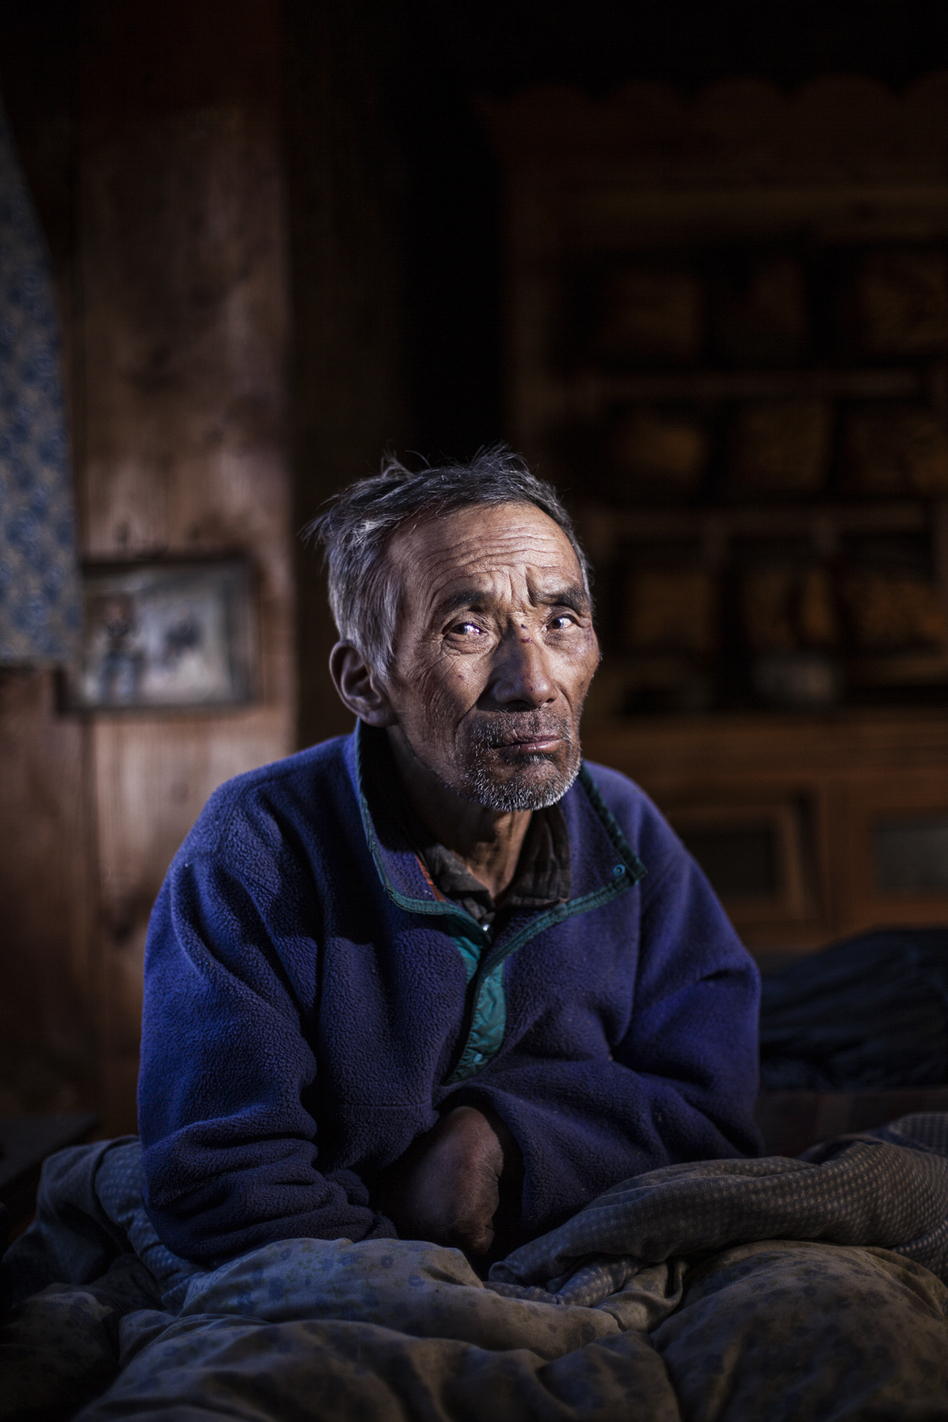 High-altitude stroke victim Lhakpa Gyalzen lives alone in the village of Phortse, Nepal. The region's highest-ranking holy man told him to read 100,000 pages of Buddhist script to heal himself. (Courtesy of Grayson Schaffer)